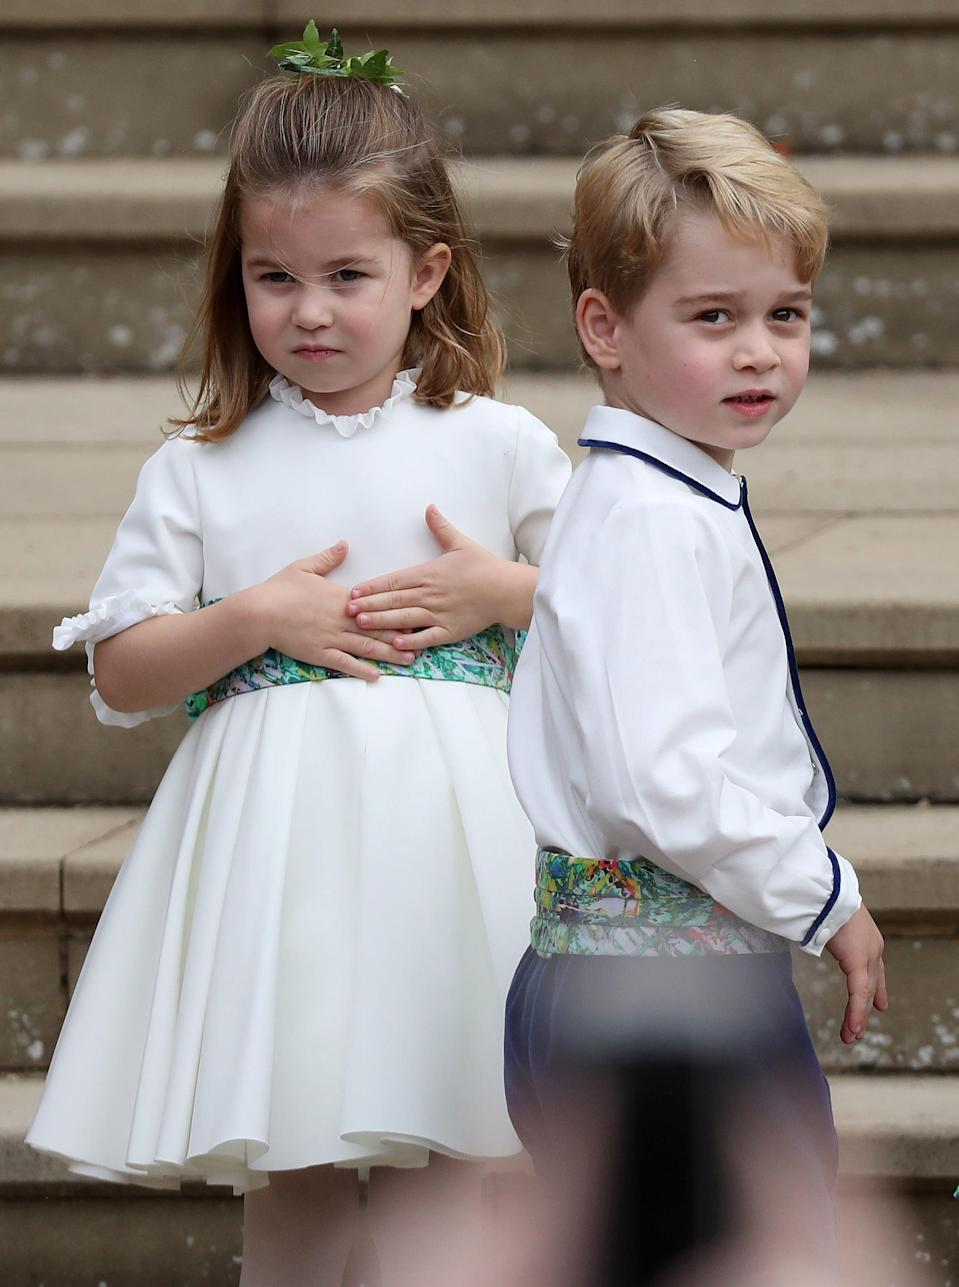 Princess Charlotte and Prince George. mage via Getty Images.